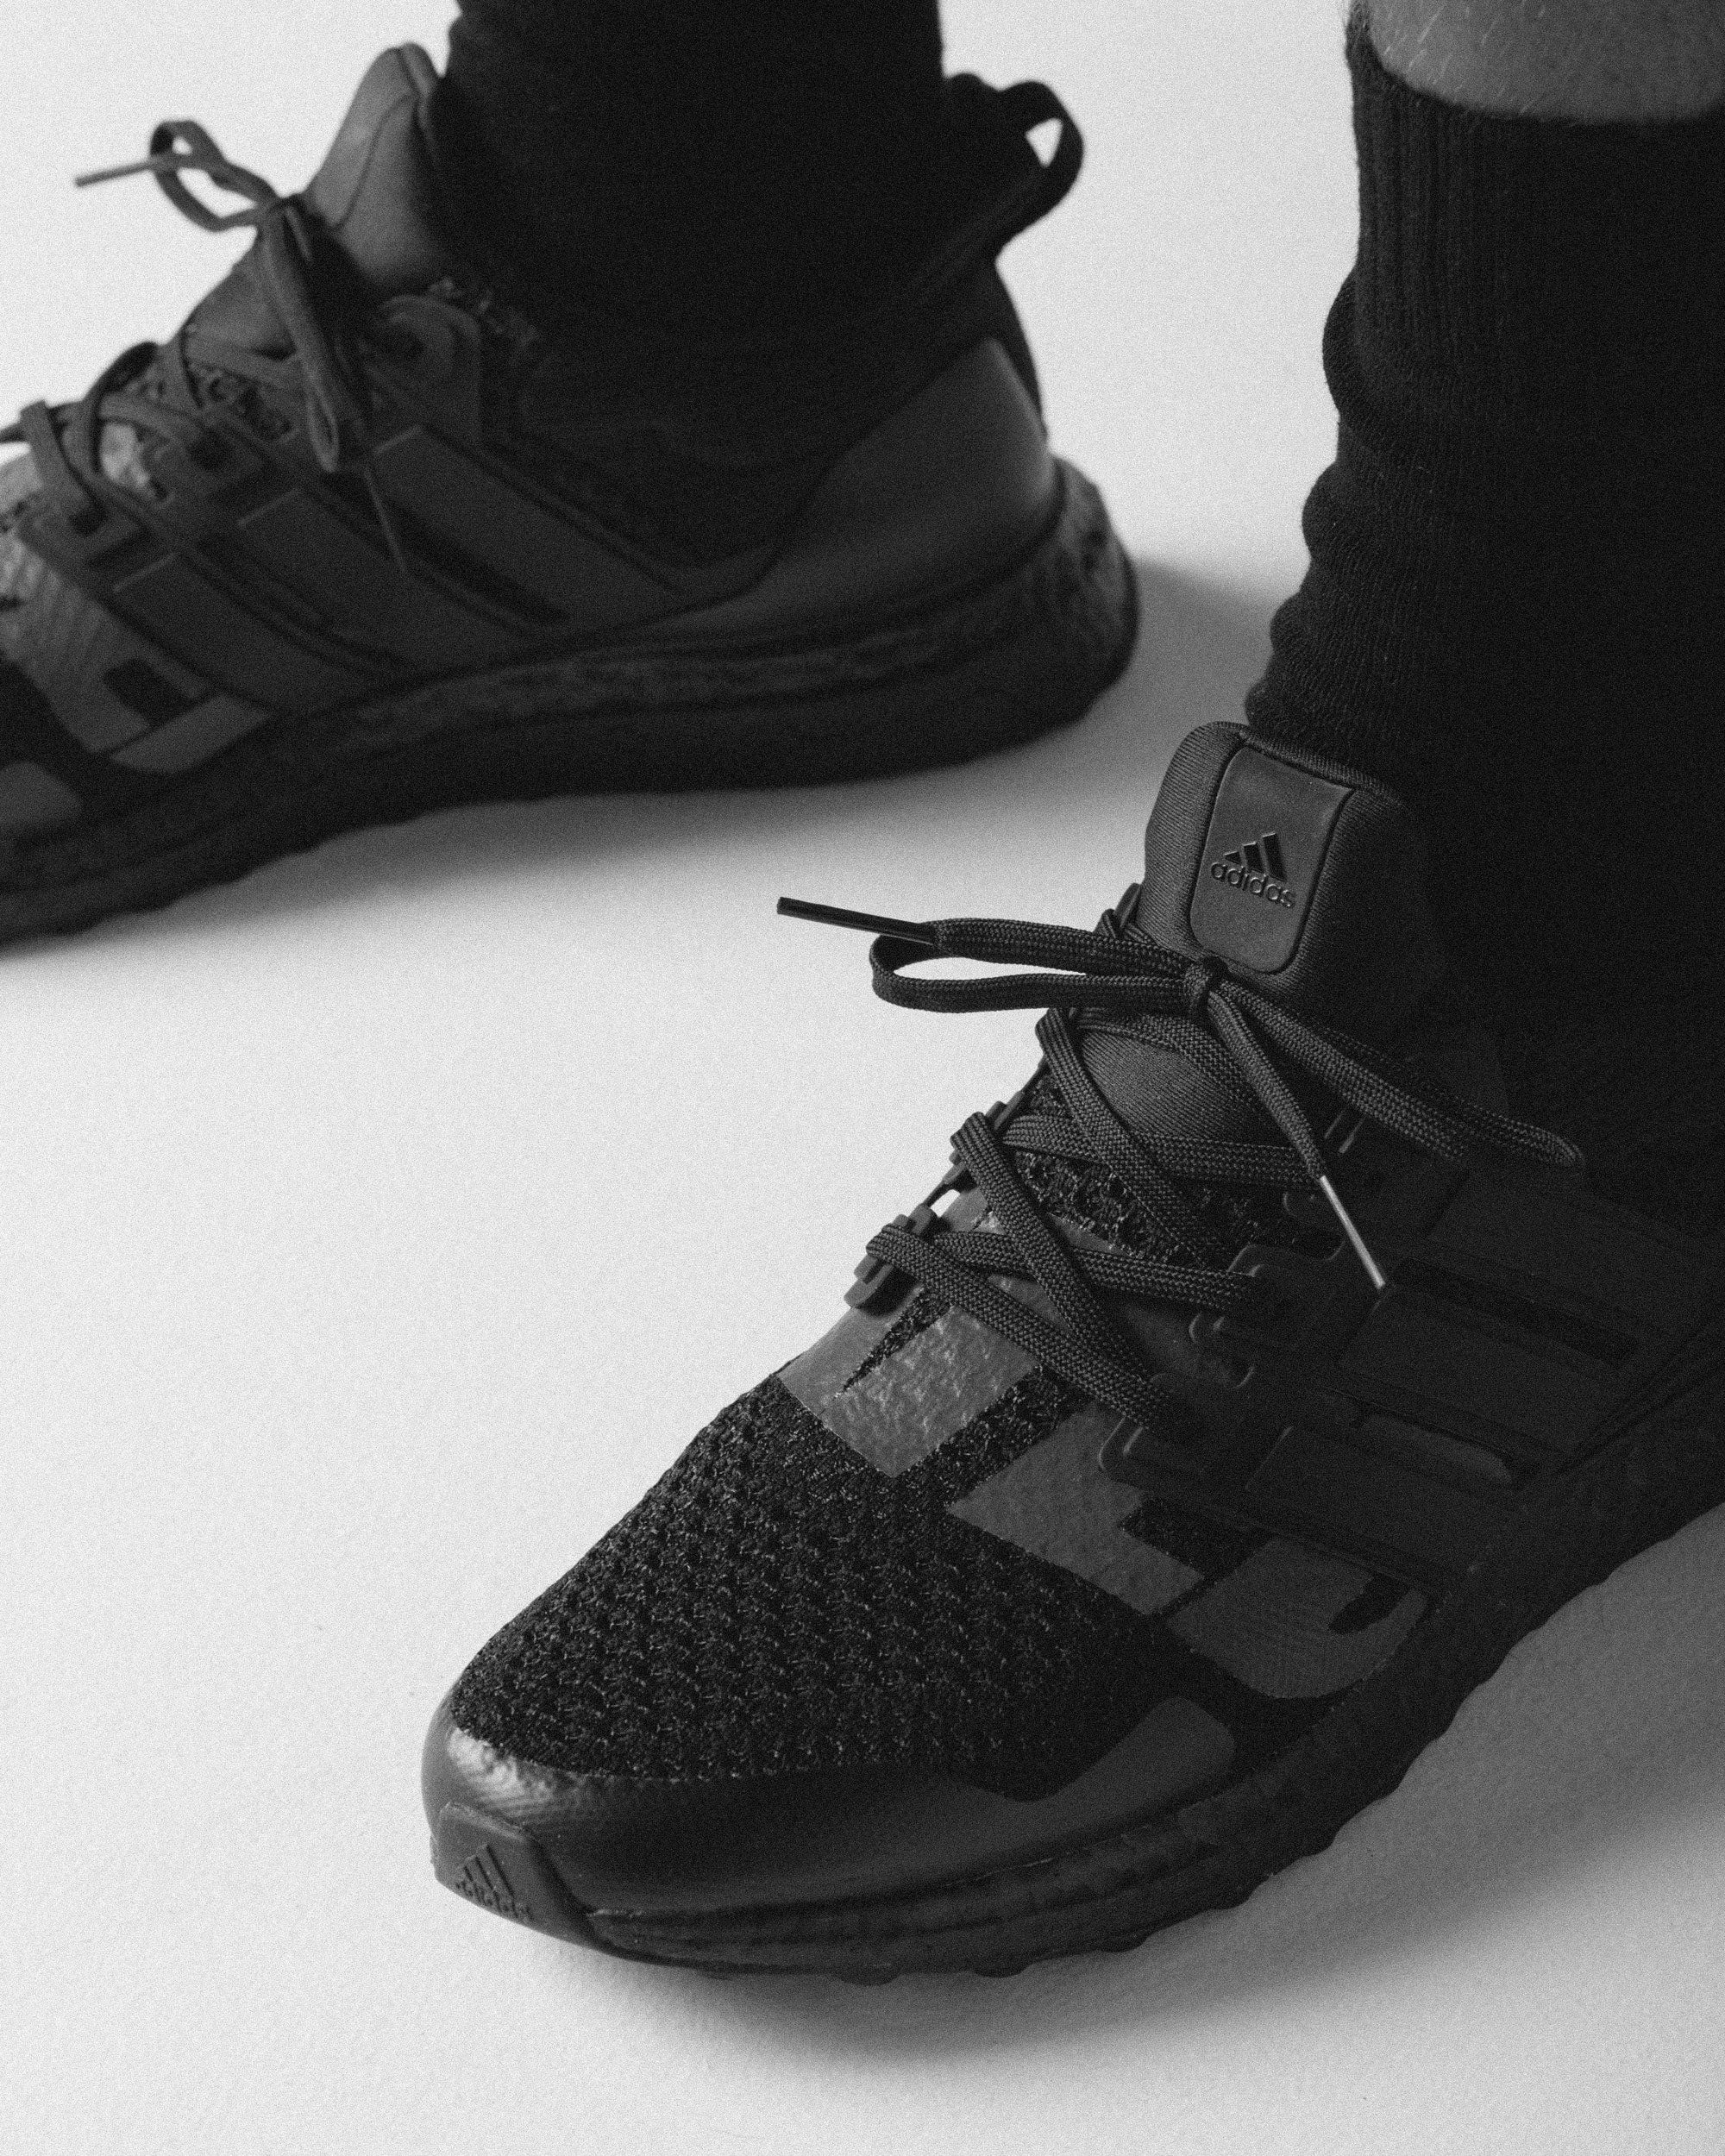 """online retailer 52091 54eb0 ADIDAS ULTRABOOST 1.0 UNDEFEATED """"BLACKOUT"""" 